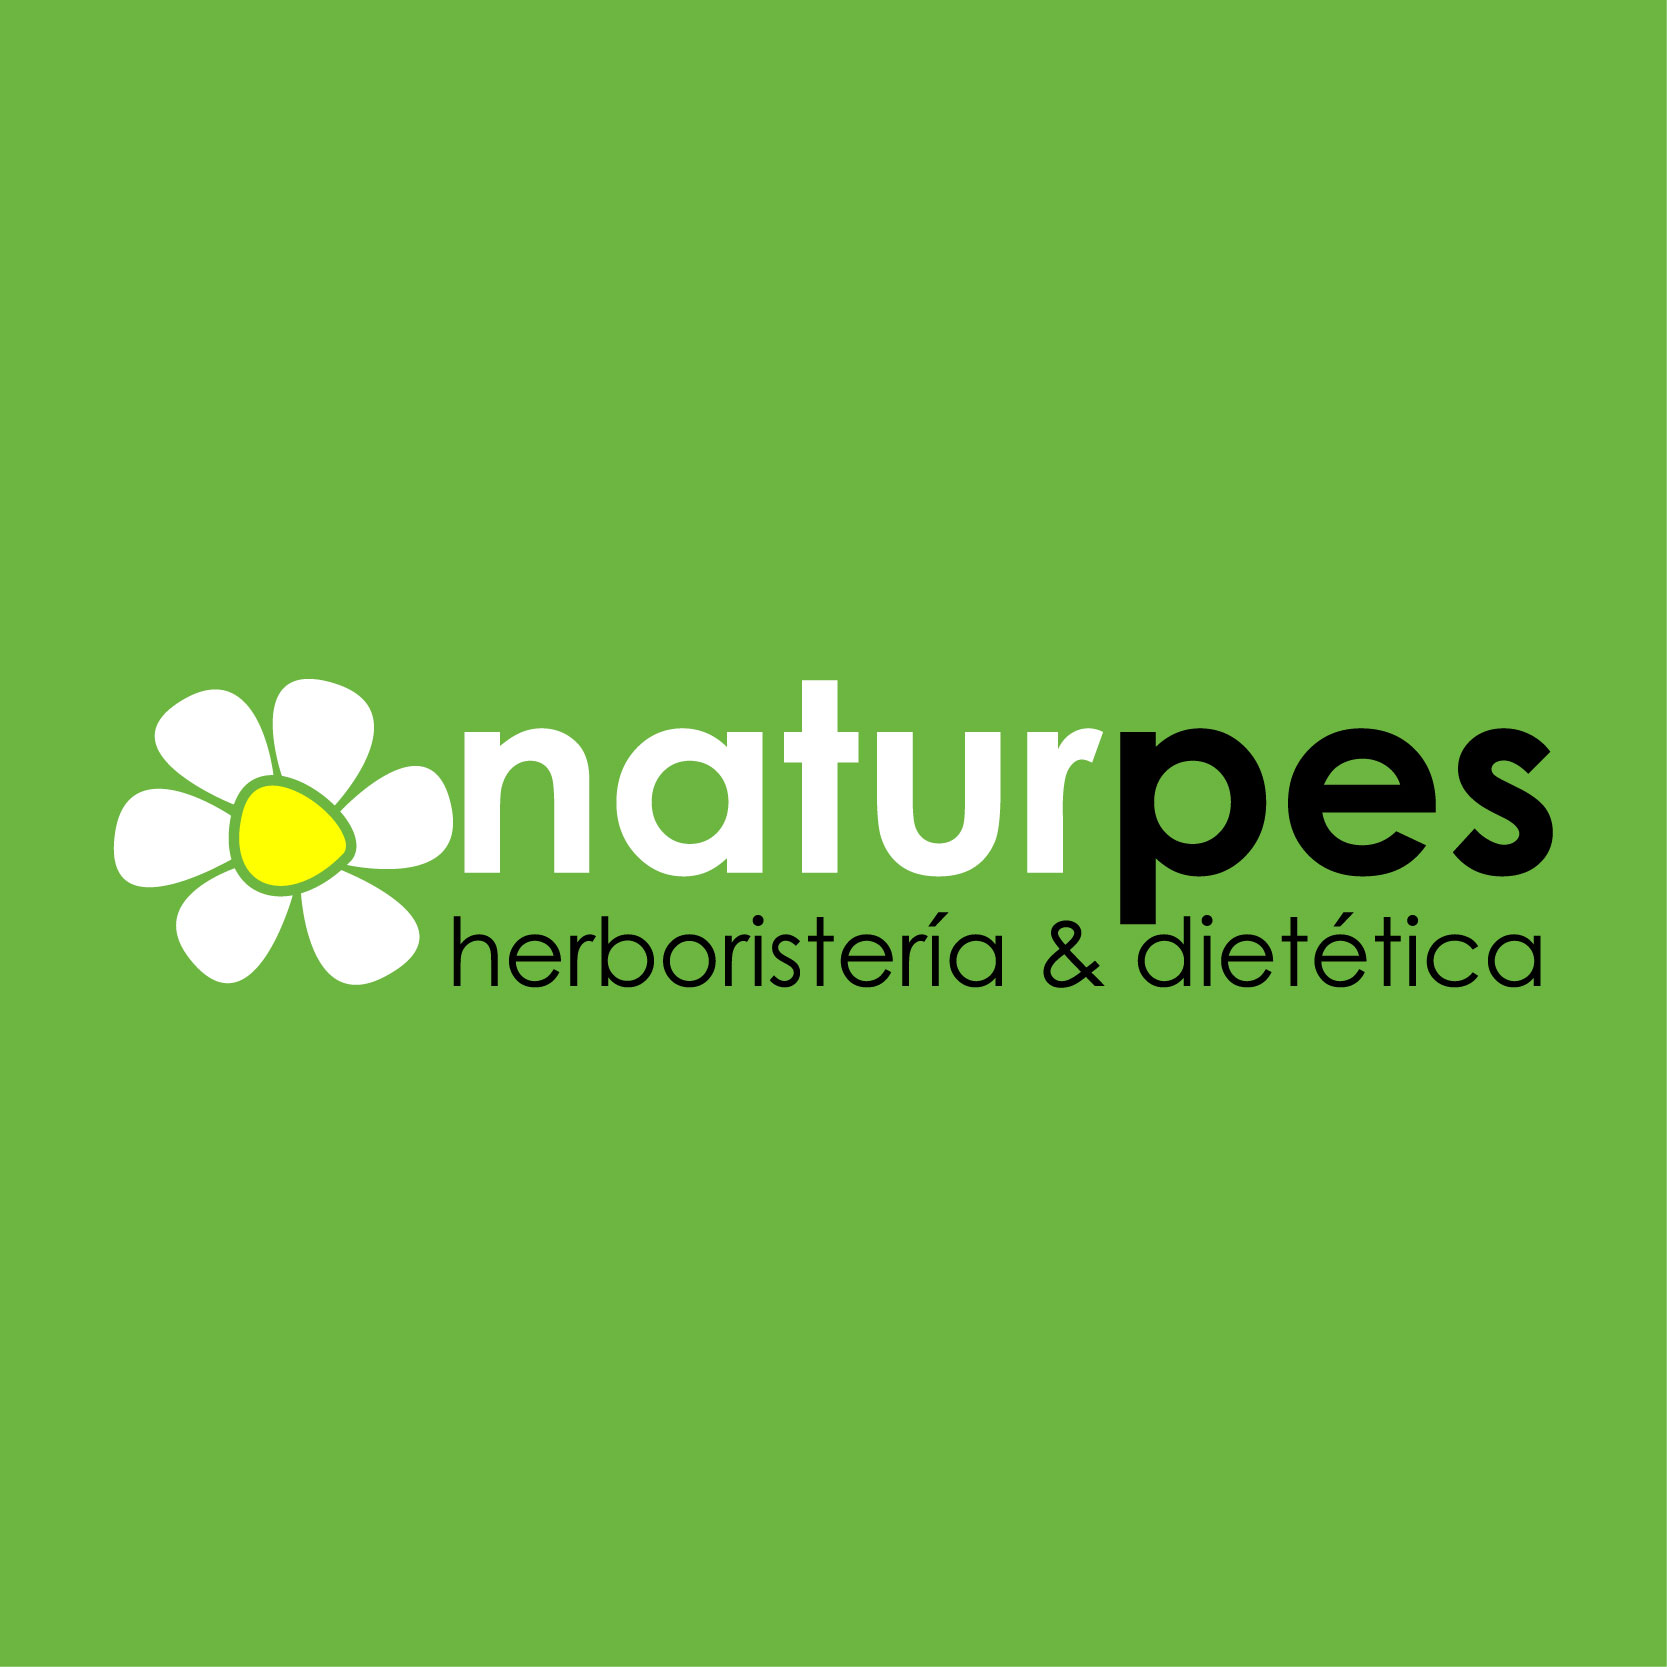 naturpes